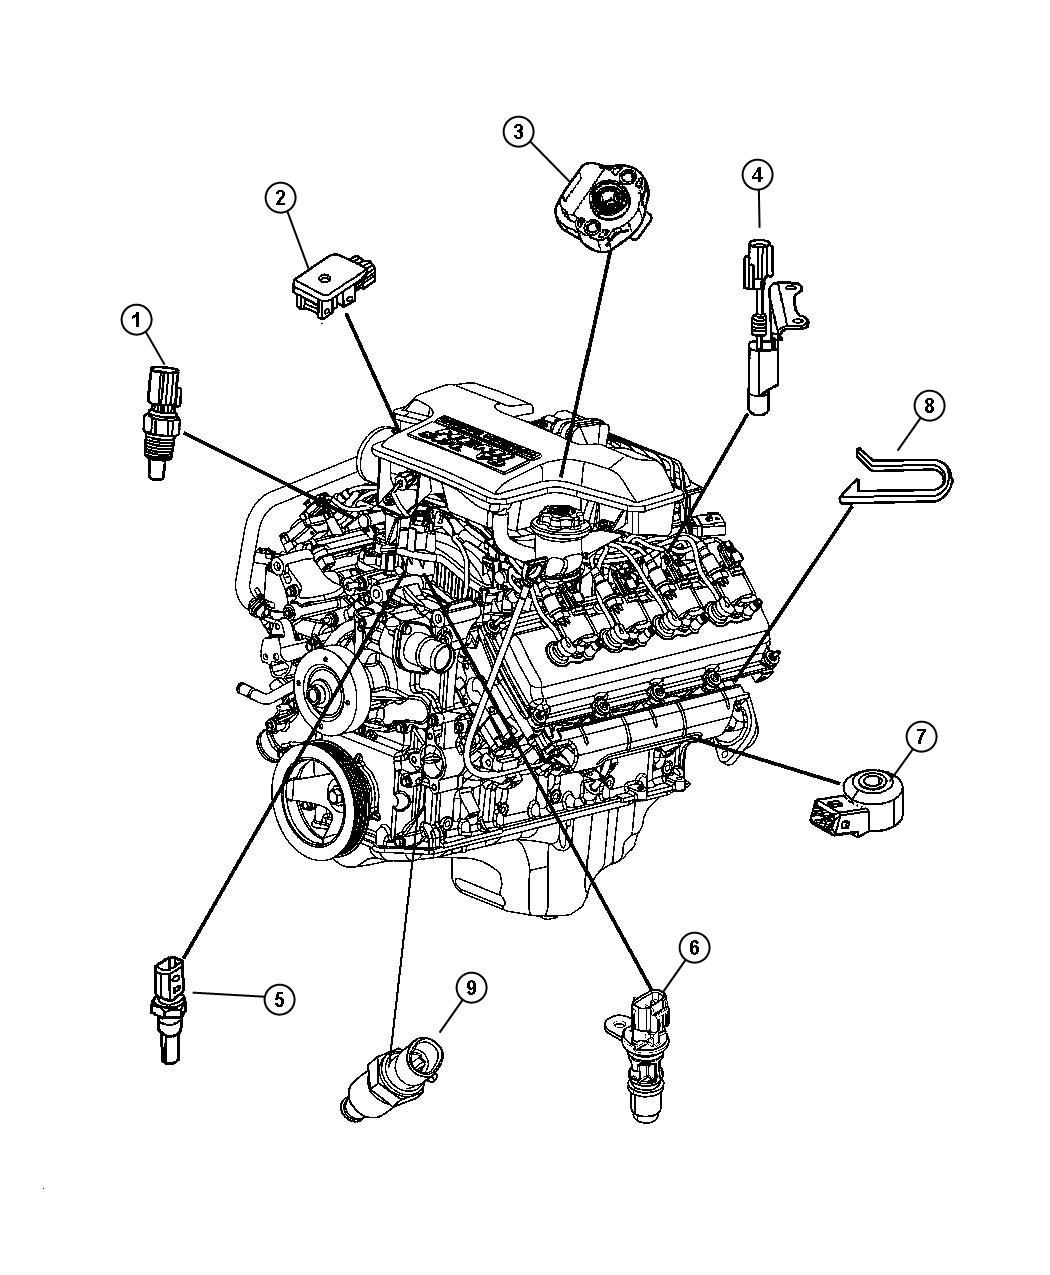 5 7 hemi engine parts schematic schematic diagramhemi engine wiring best wiring library dodge 5 7 hemi valvetrain problems 5 7l chevy engine parts